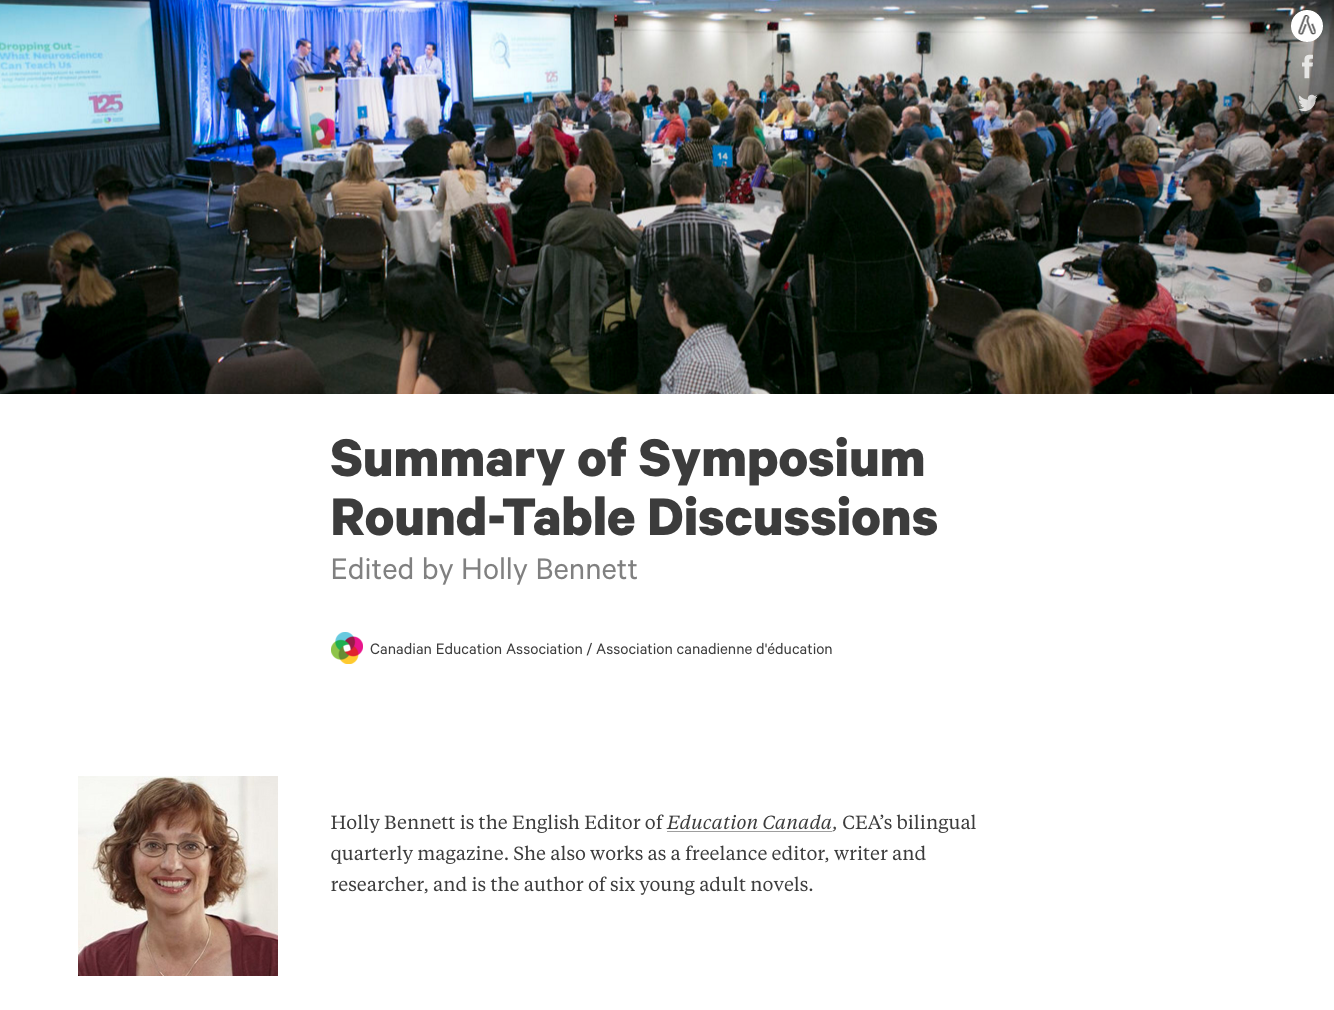 symposium summary